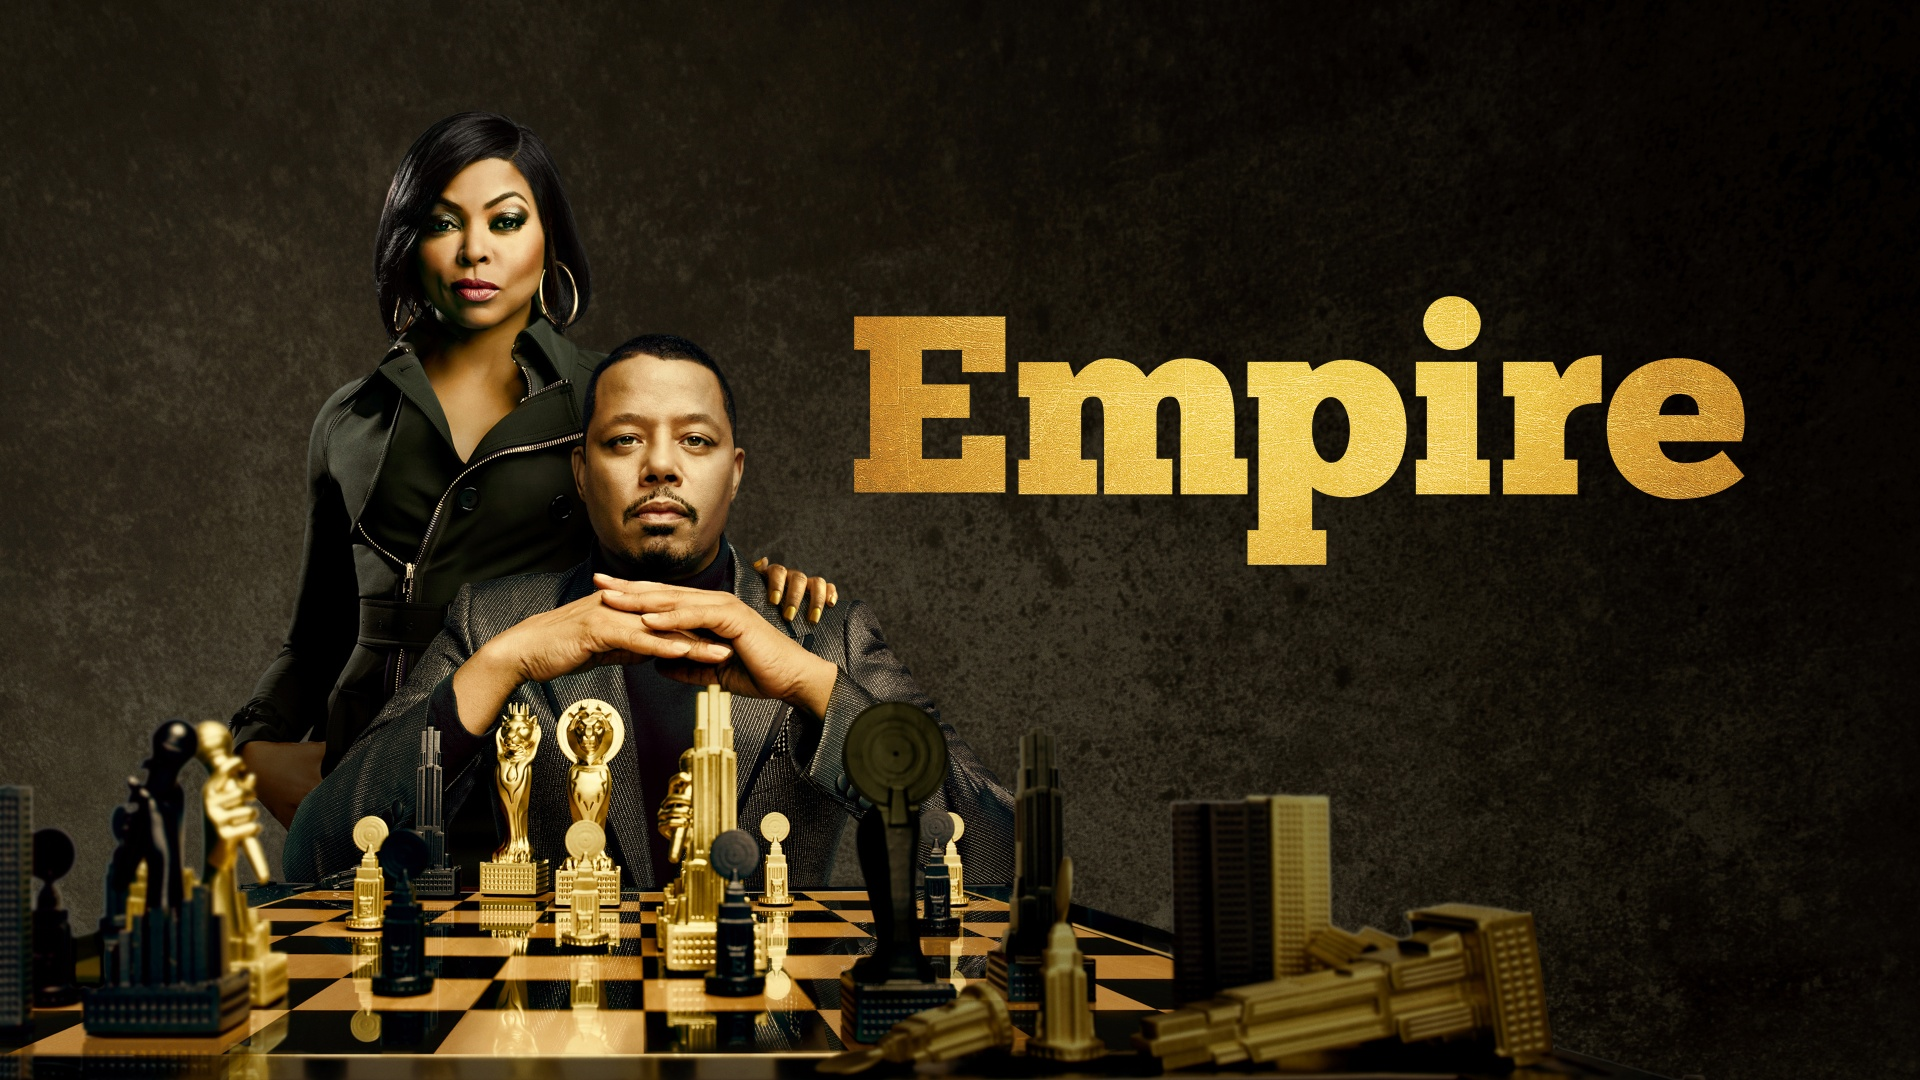 Producers confirm early ending Empire, but hope for more